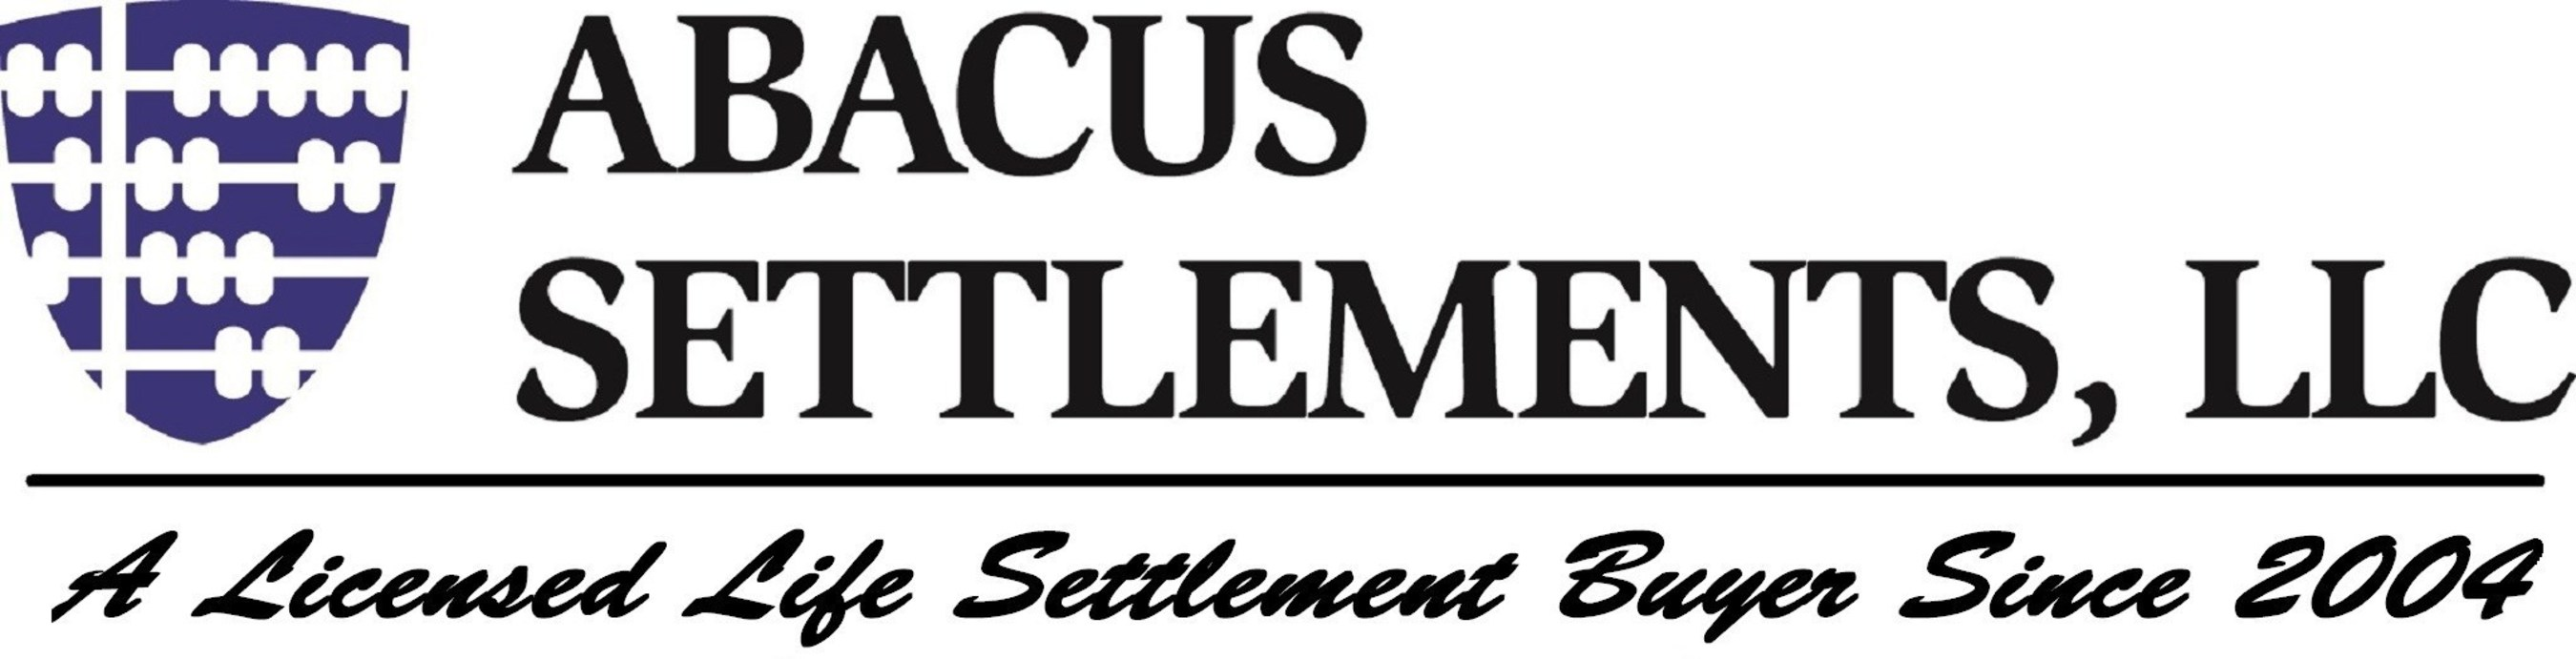 Abacus Life Settlements is a licensed life settlement buyer since 2004. Originally formed in New York's financial district and now with offices in NY & Tennessee, Abacus Settlements, is a distinguished Provider of Life Settlements since 2004. Abacus shareholders and officers have been leaders in the Life Settlement industry since the industries inception in the mid 90's. Abacus Life Settlements strongly supports regulation that protects Consumers. Call Us Today 615-732-6241 https://abacuslifesettlements.com